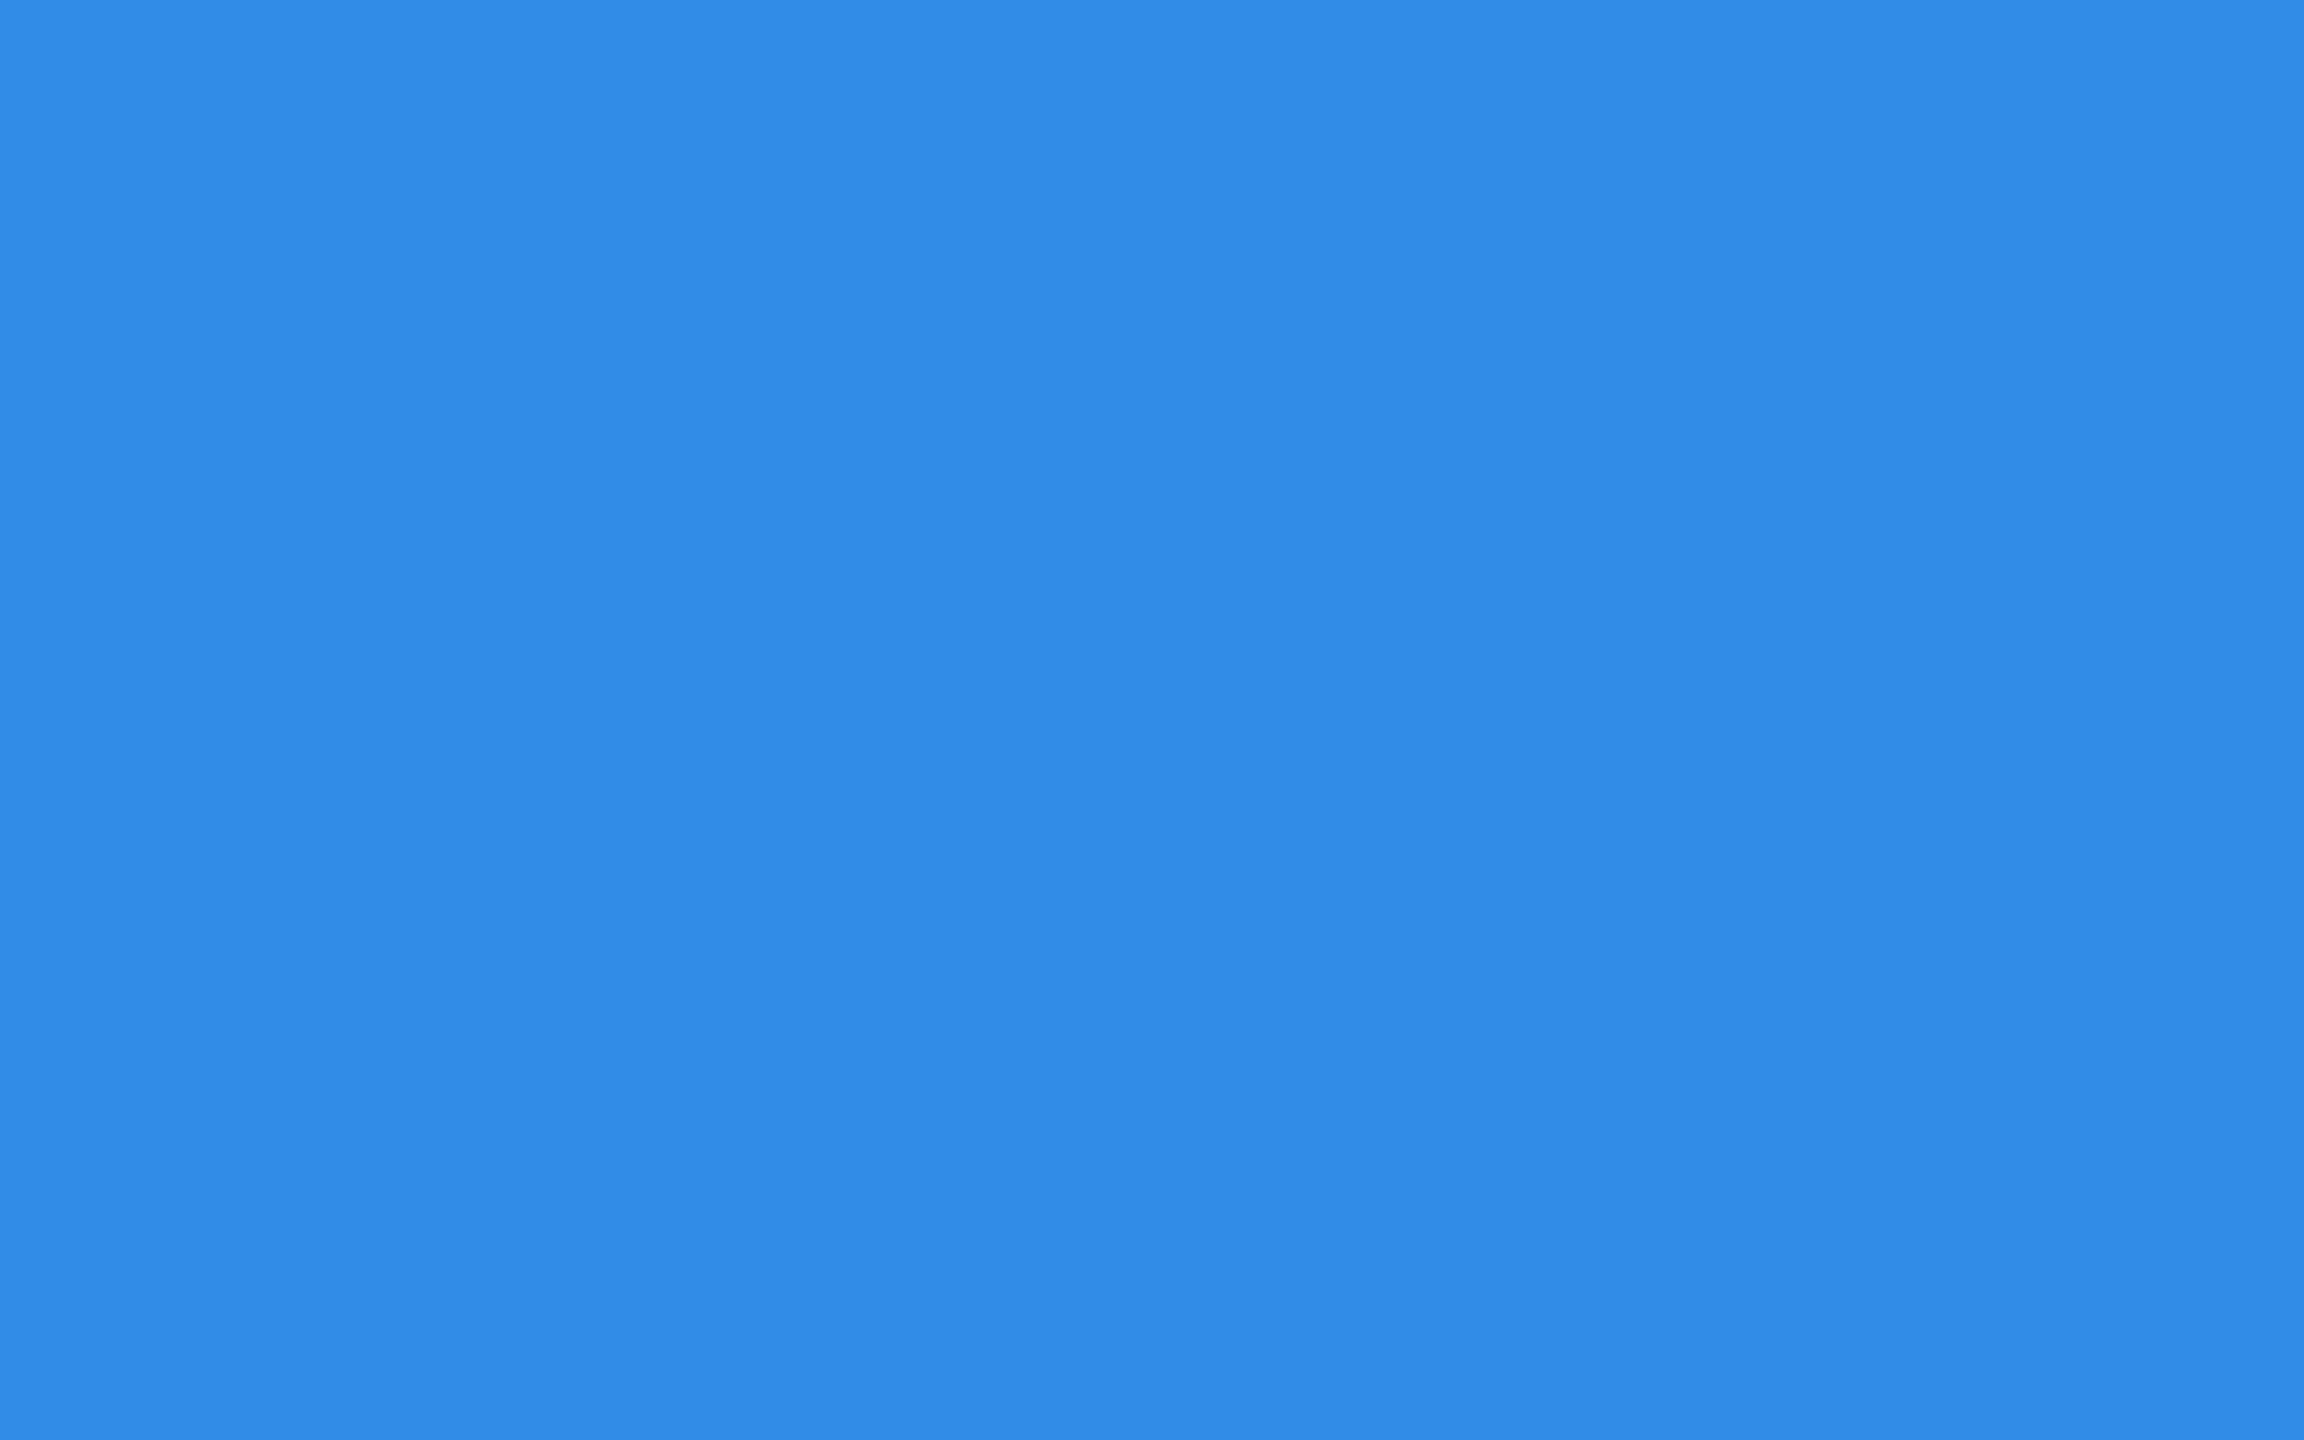 2304x1440 Bleu De France Solid Color Background